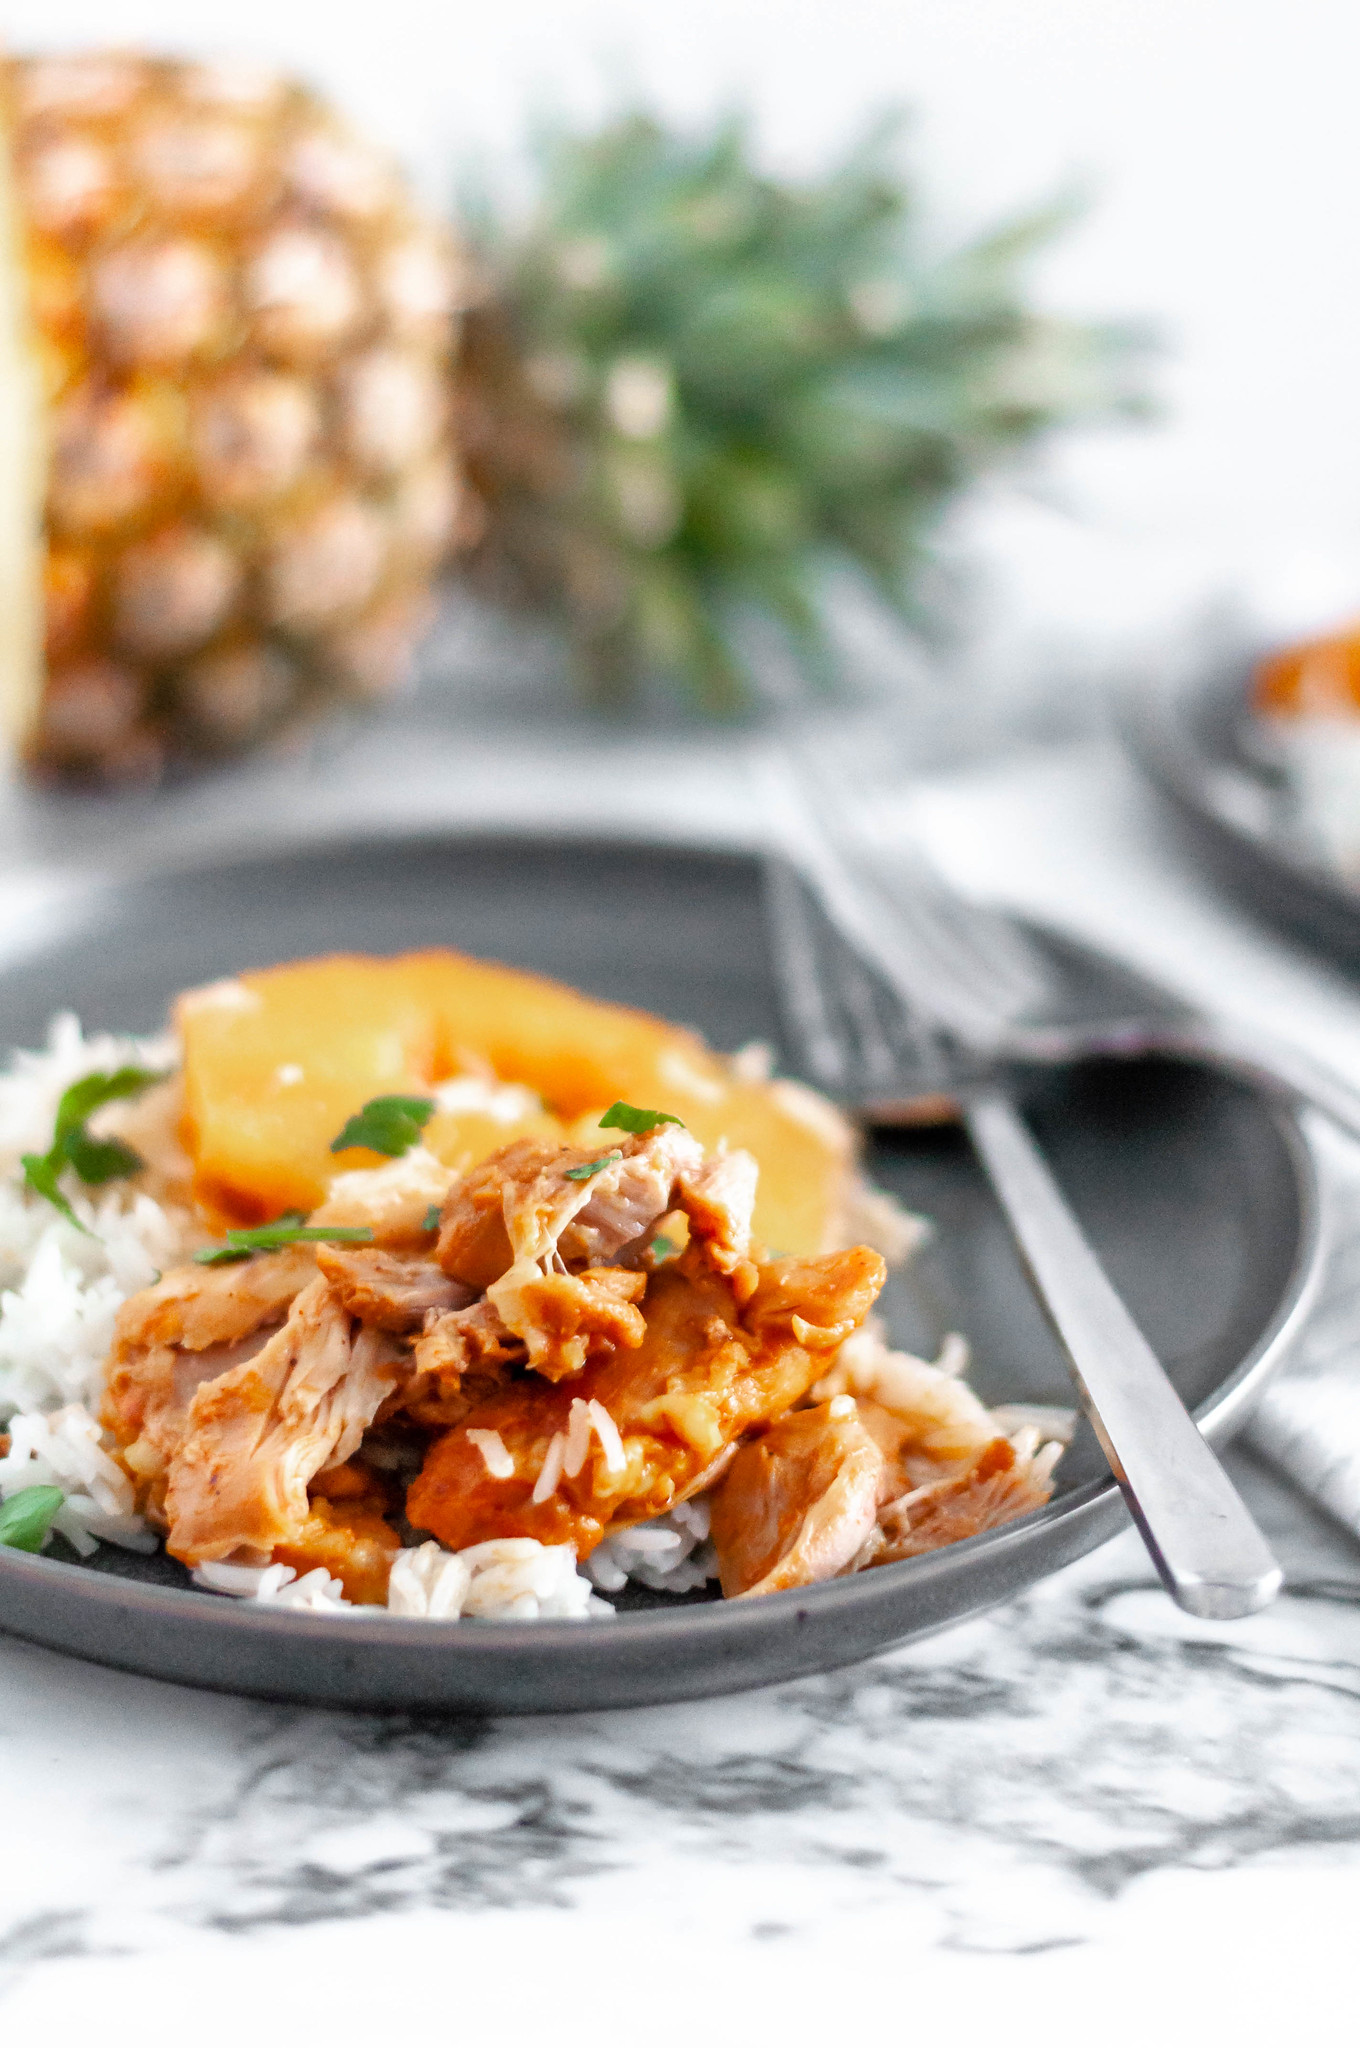 Pineapple BBQ Instant Pot Chicken is packed full of flavor and yields a super tender chicken. Serve over rice for a super simple and quick weeknight meal.